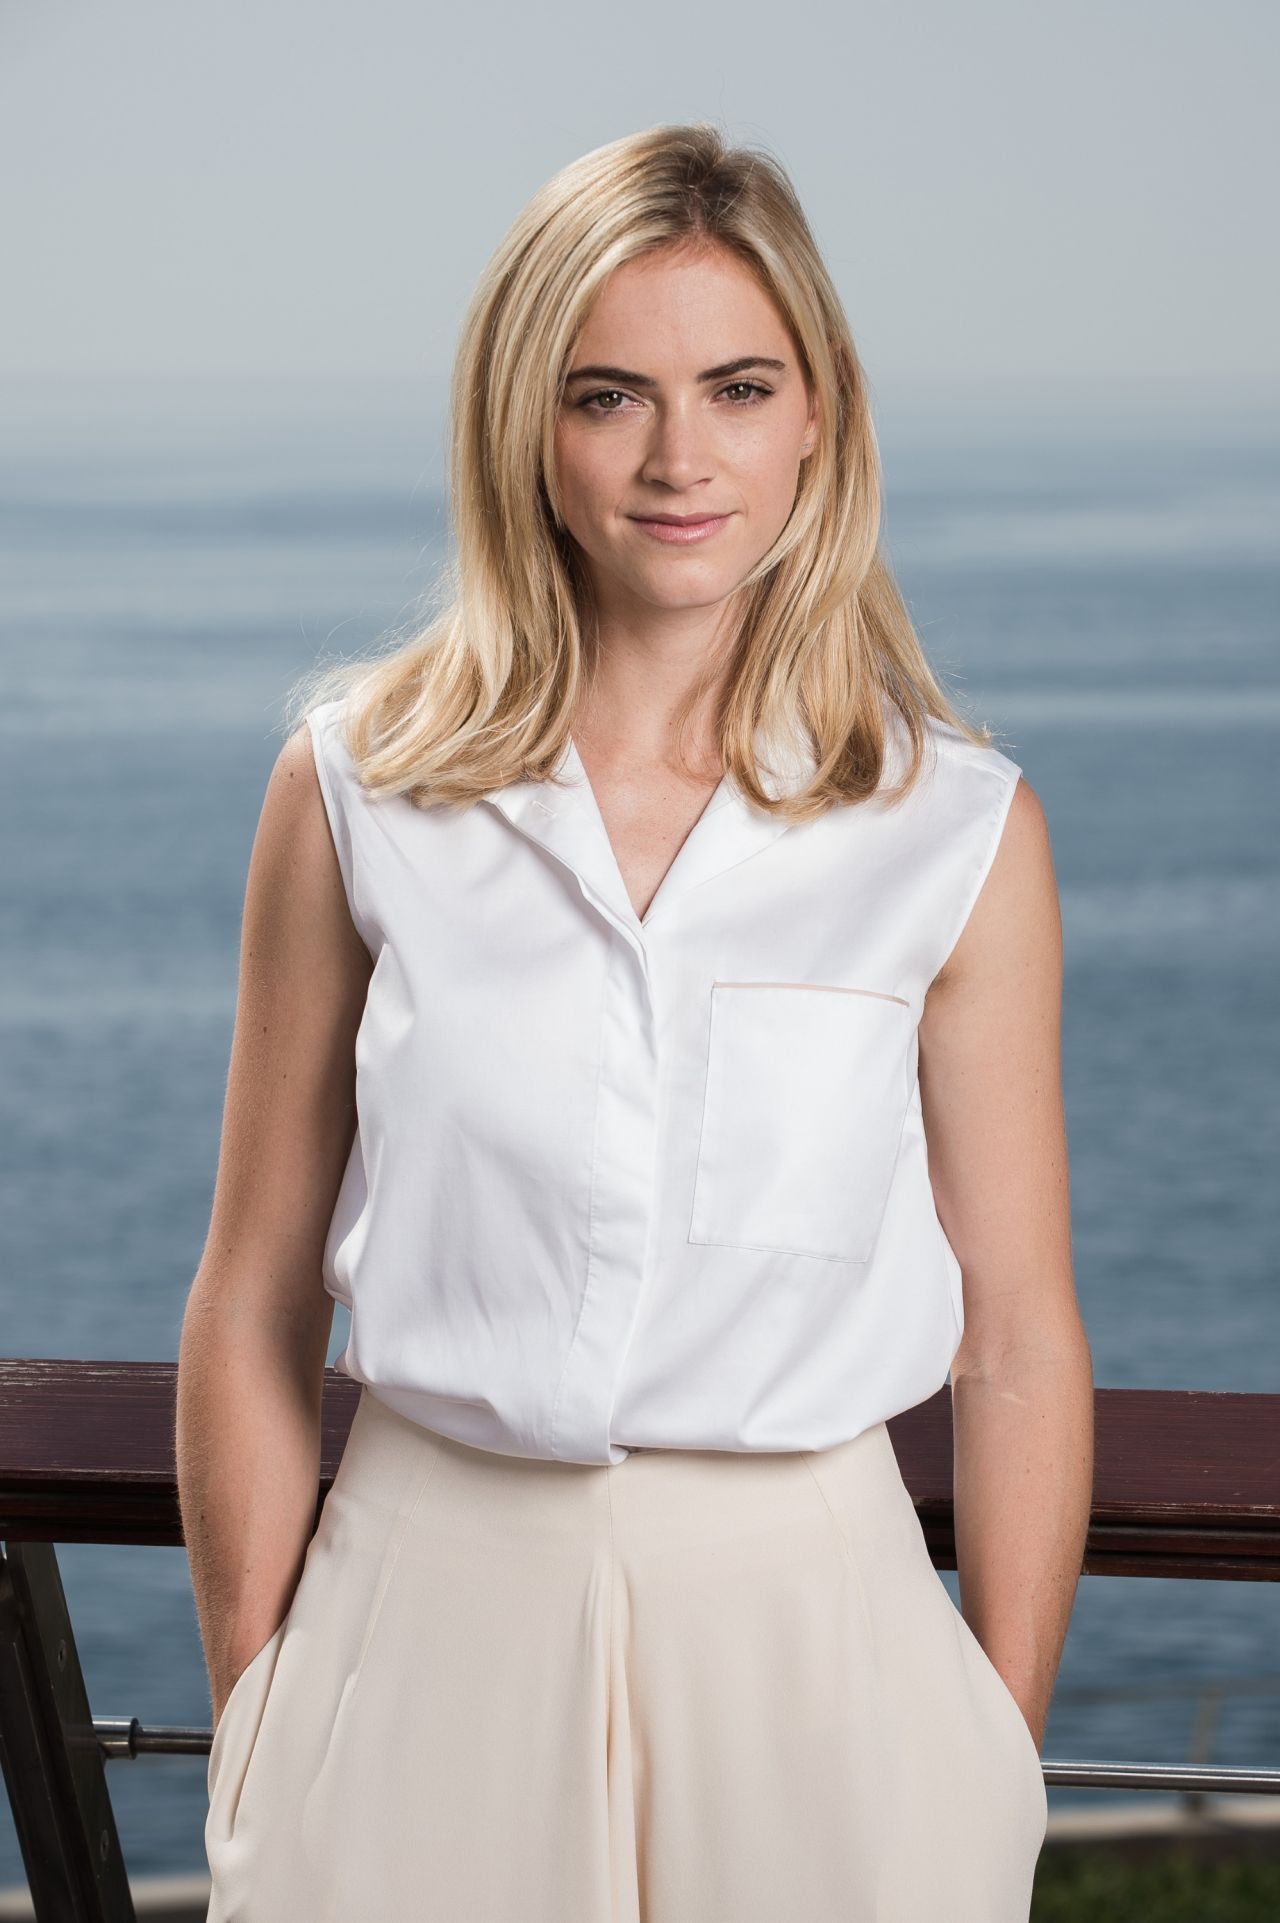 Emily wickersham wallpapers high resolution and quality - Emily wickersham gardener of eden ...